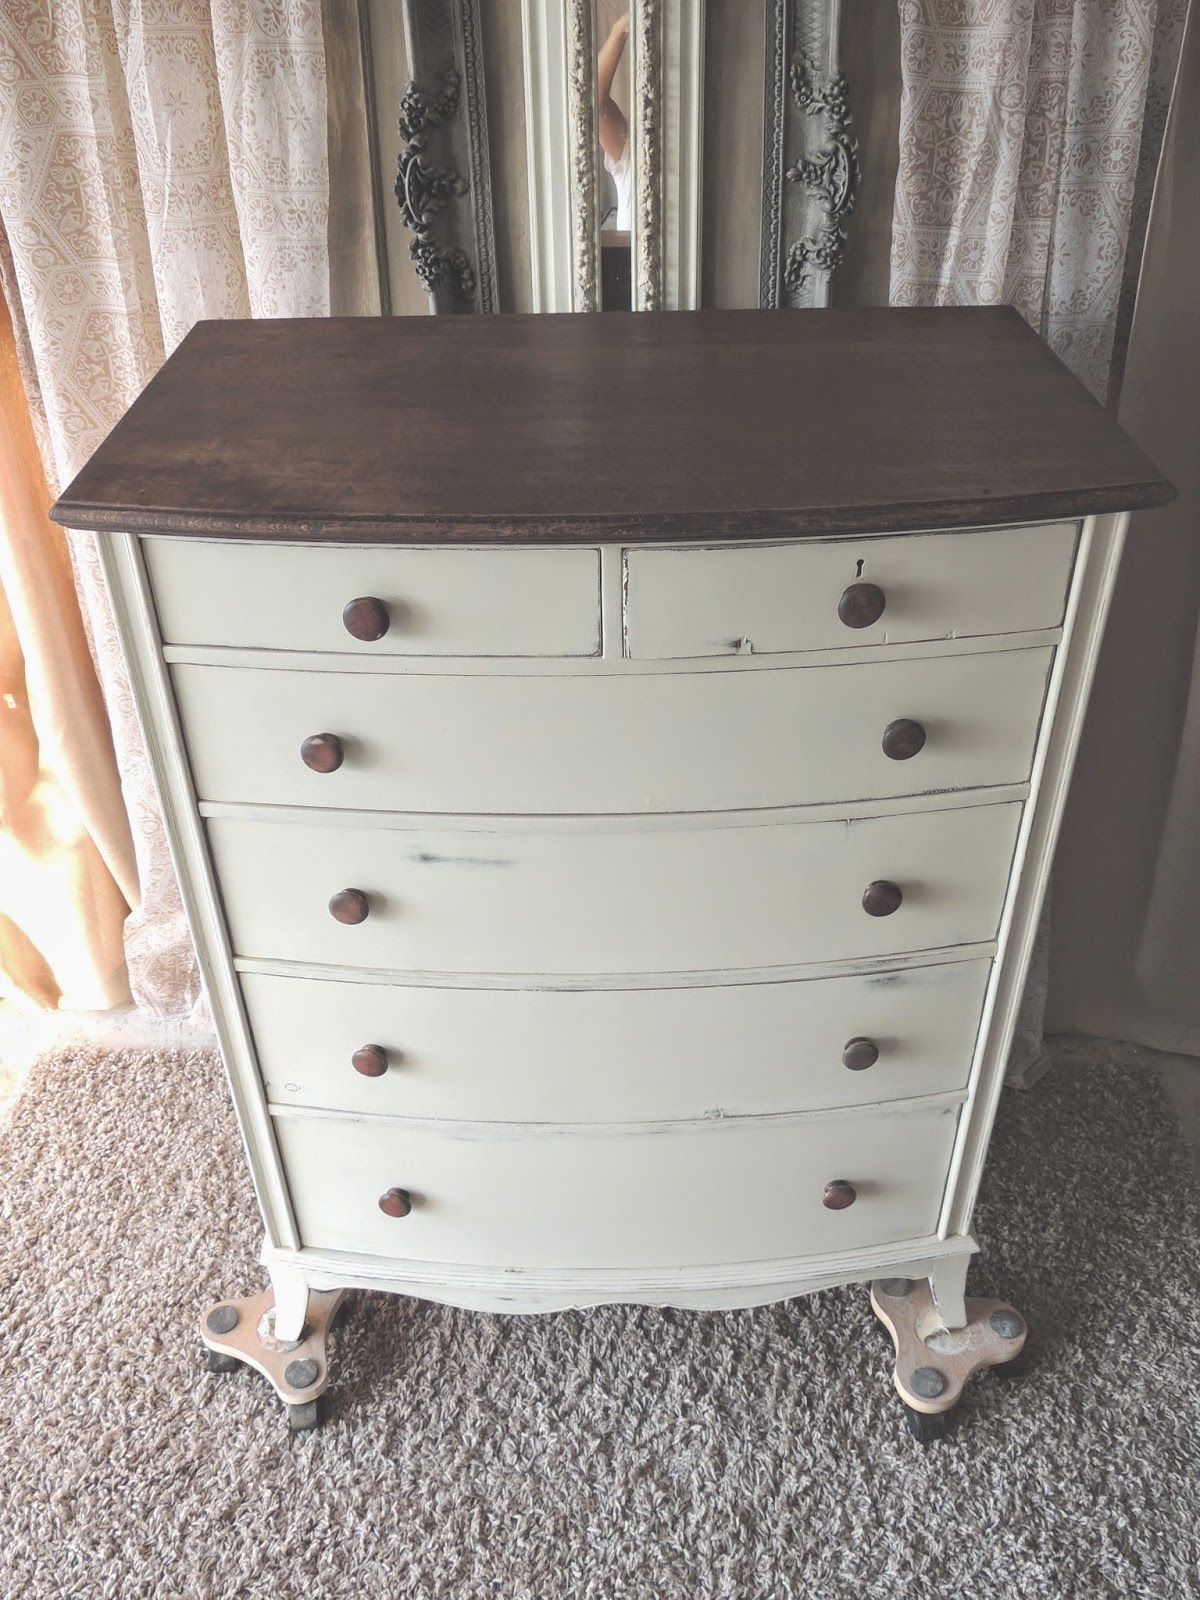 Stained and chalk painted dresser